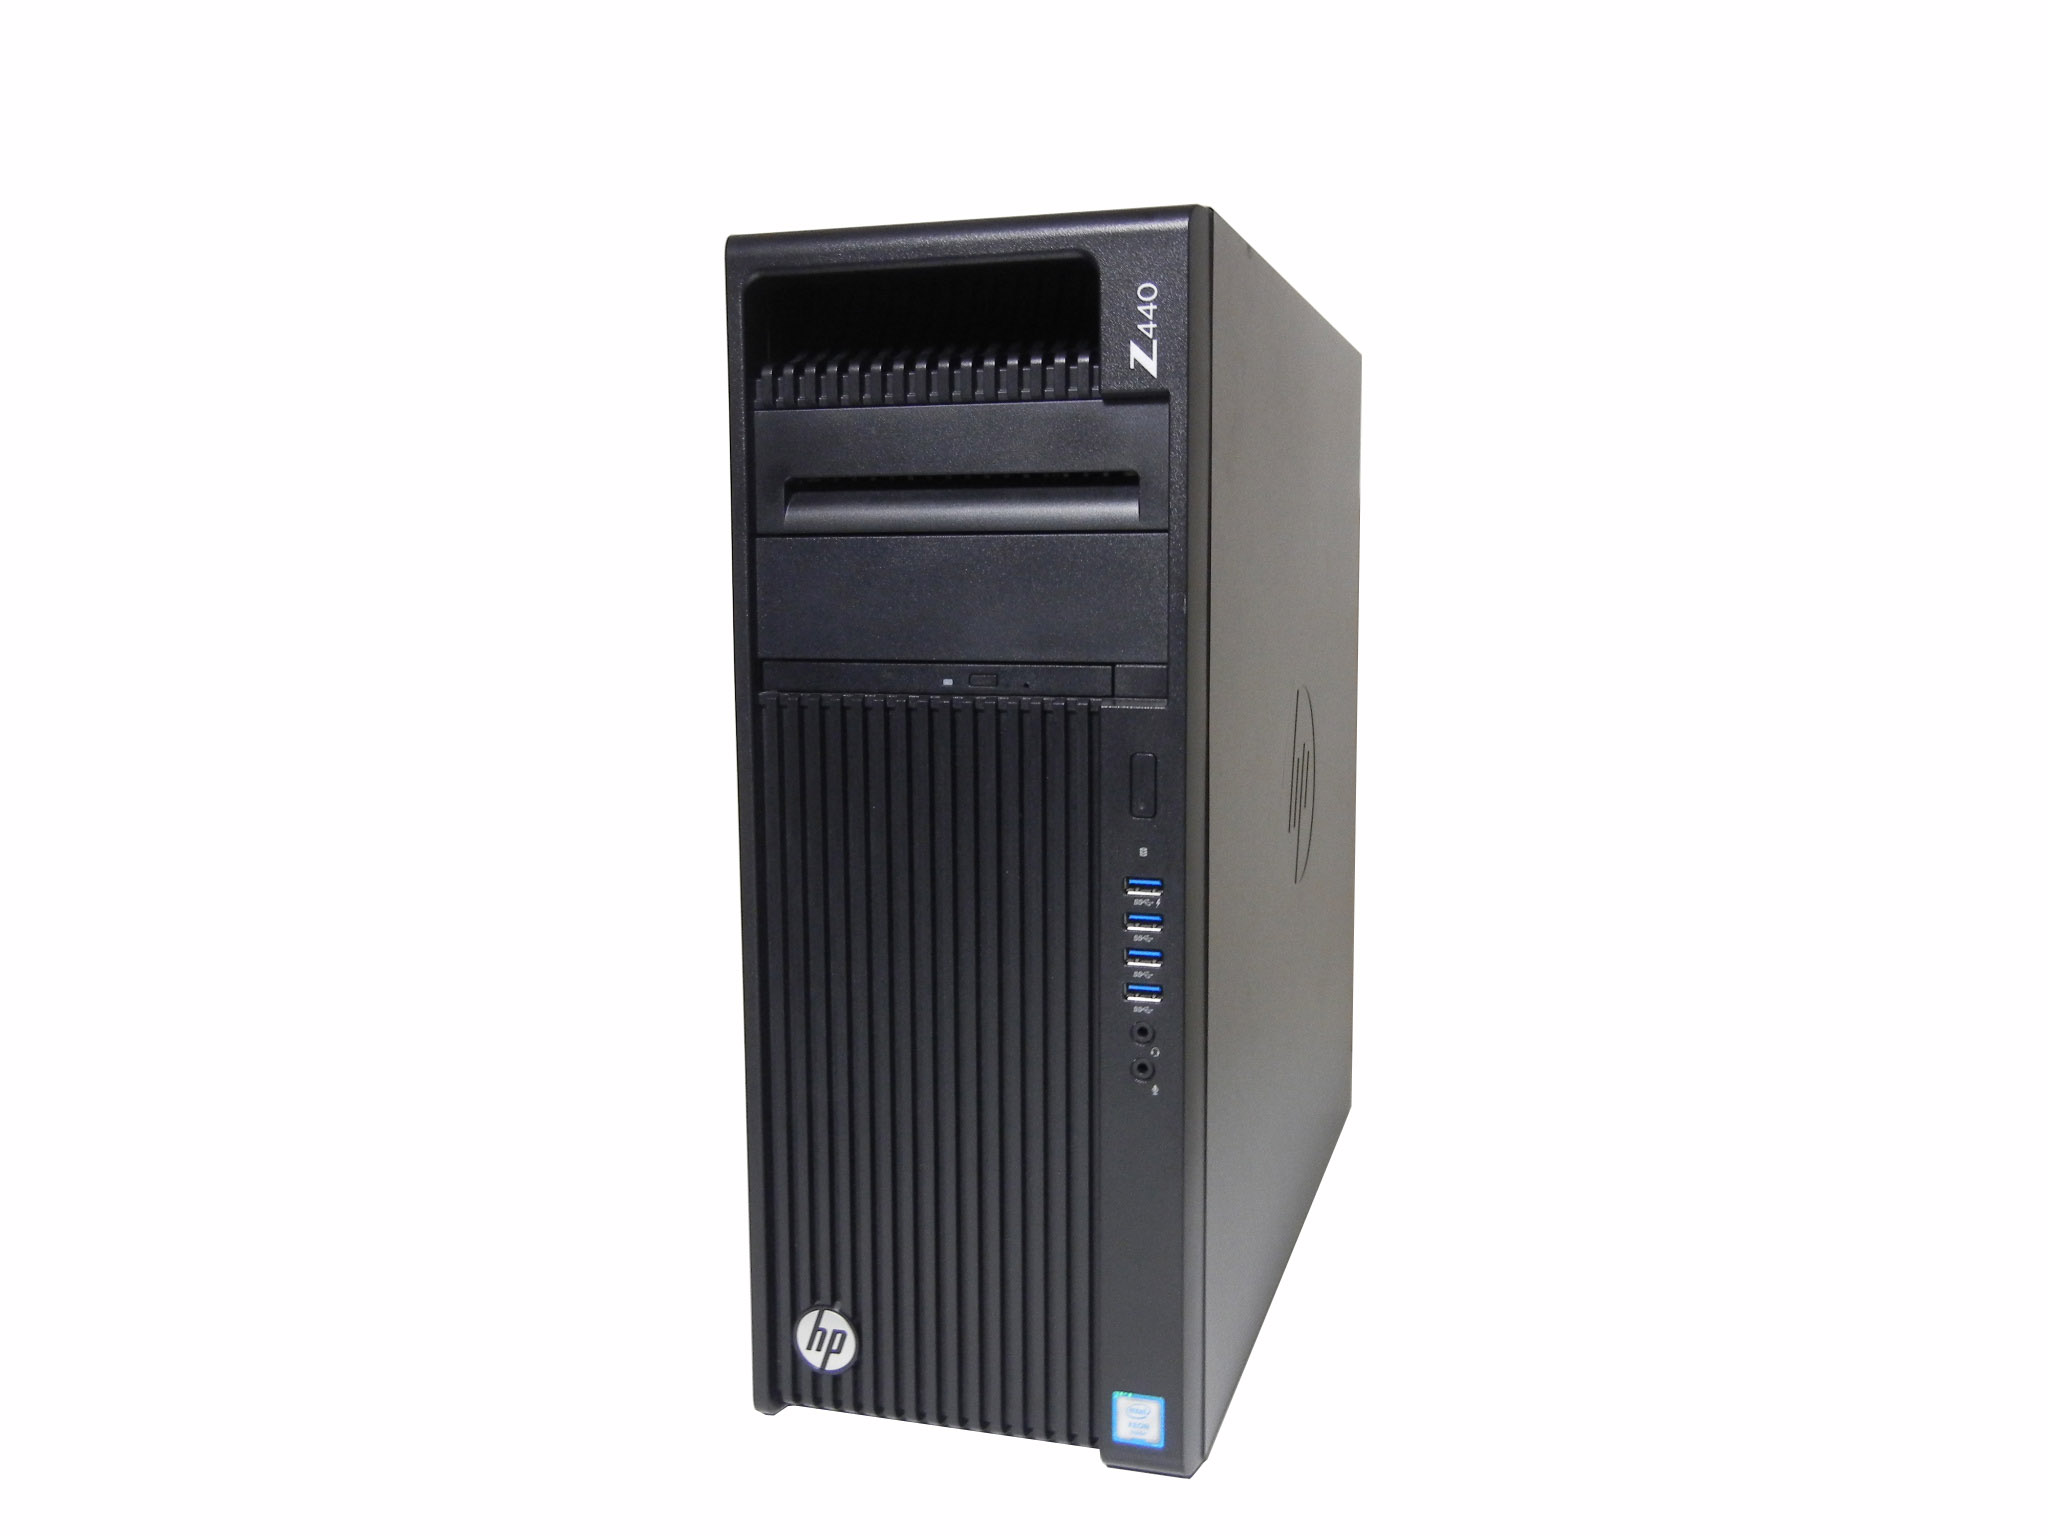 【中古】HP Z440 Workstation 4core Xeon E5-1620 v4 3.50GHz/64GB/500GB x1/GeForce GTX1070 S.A.C